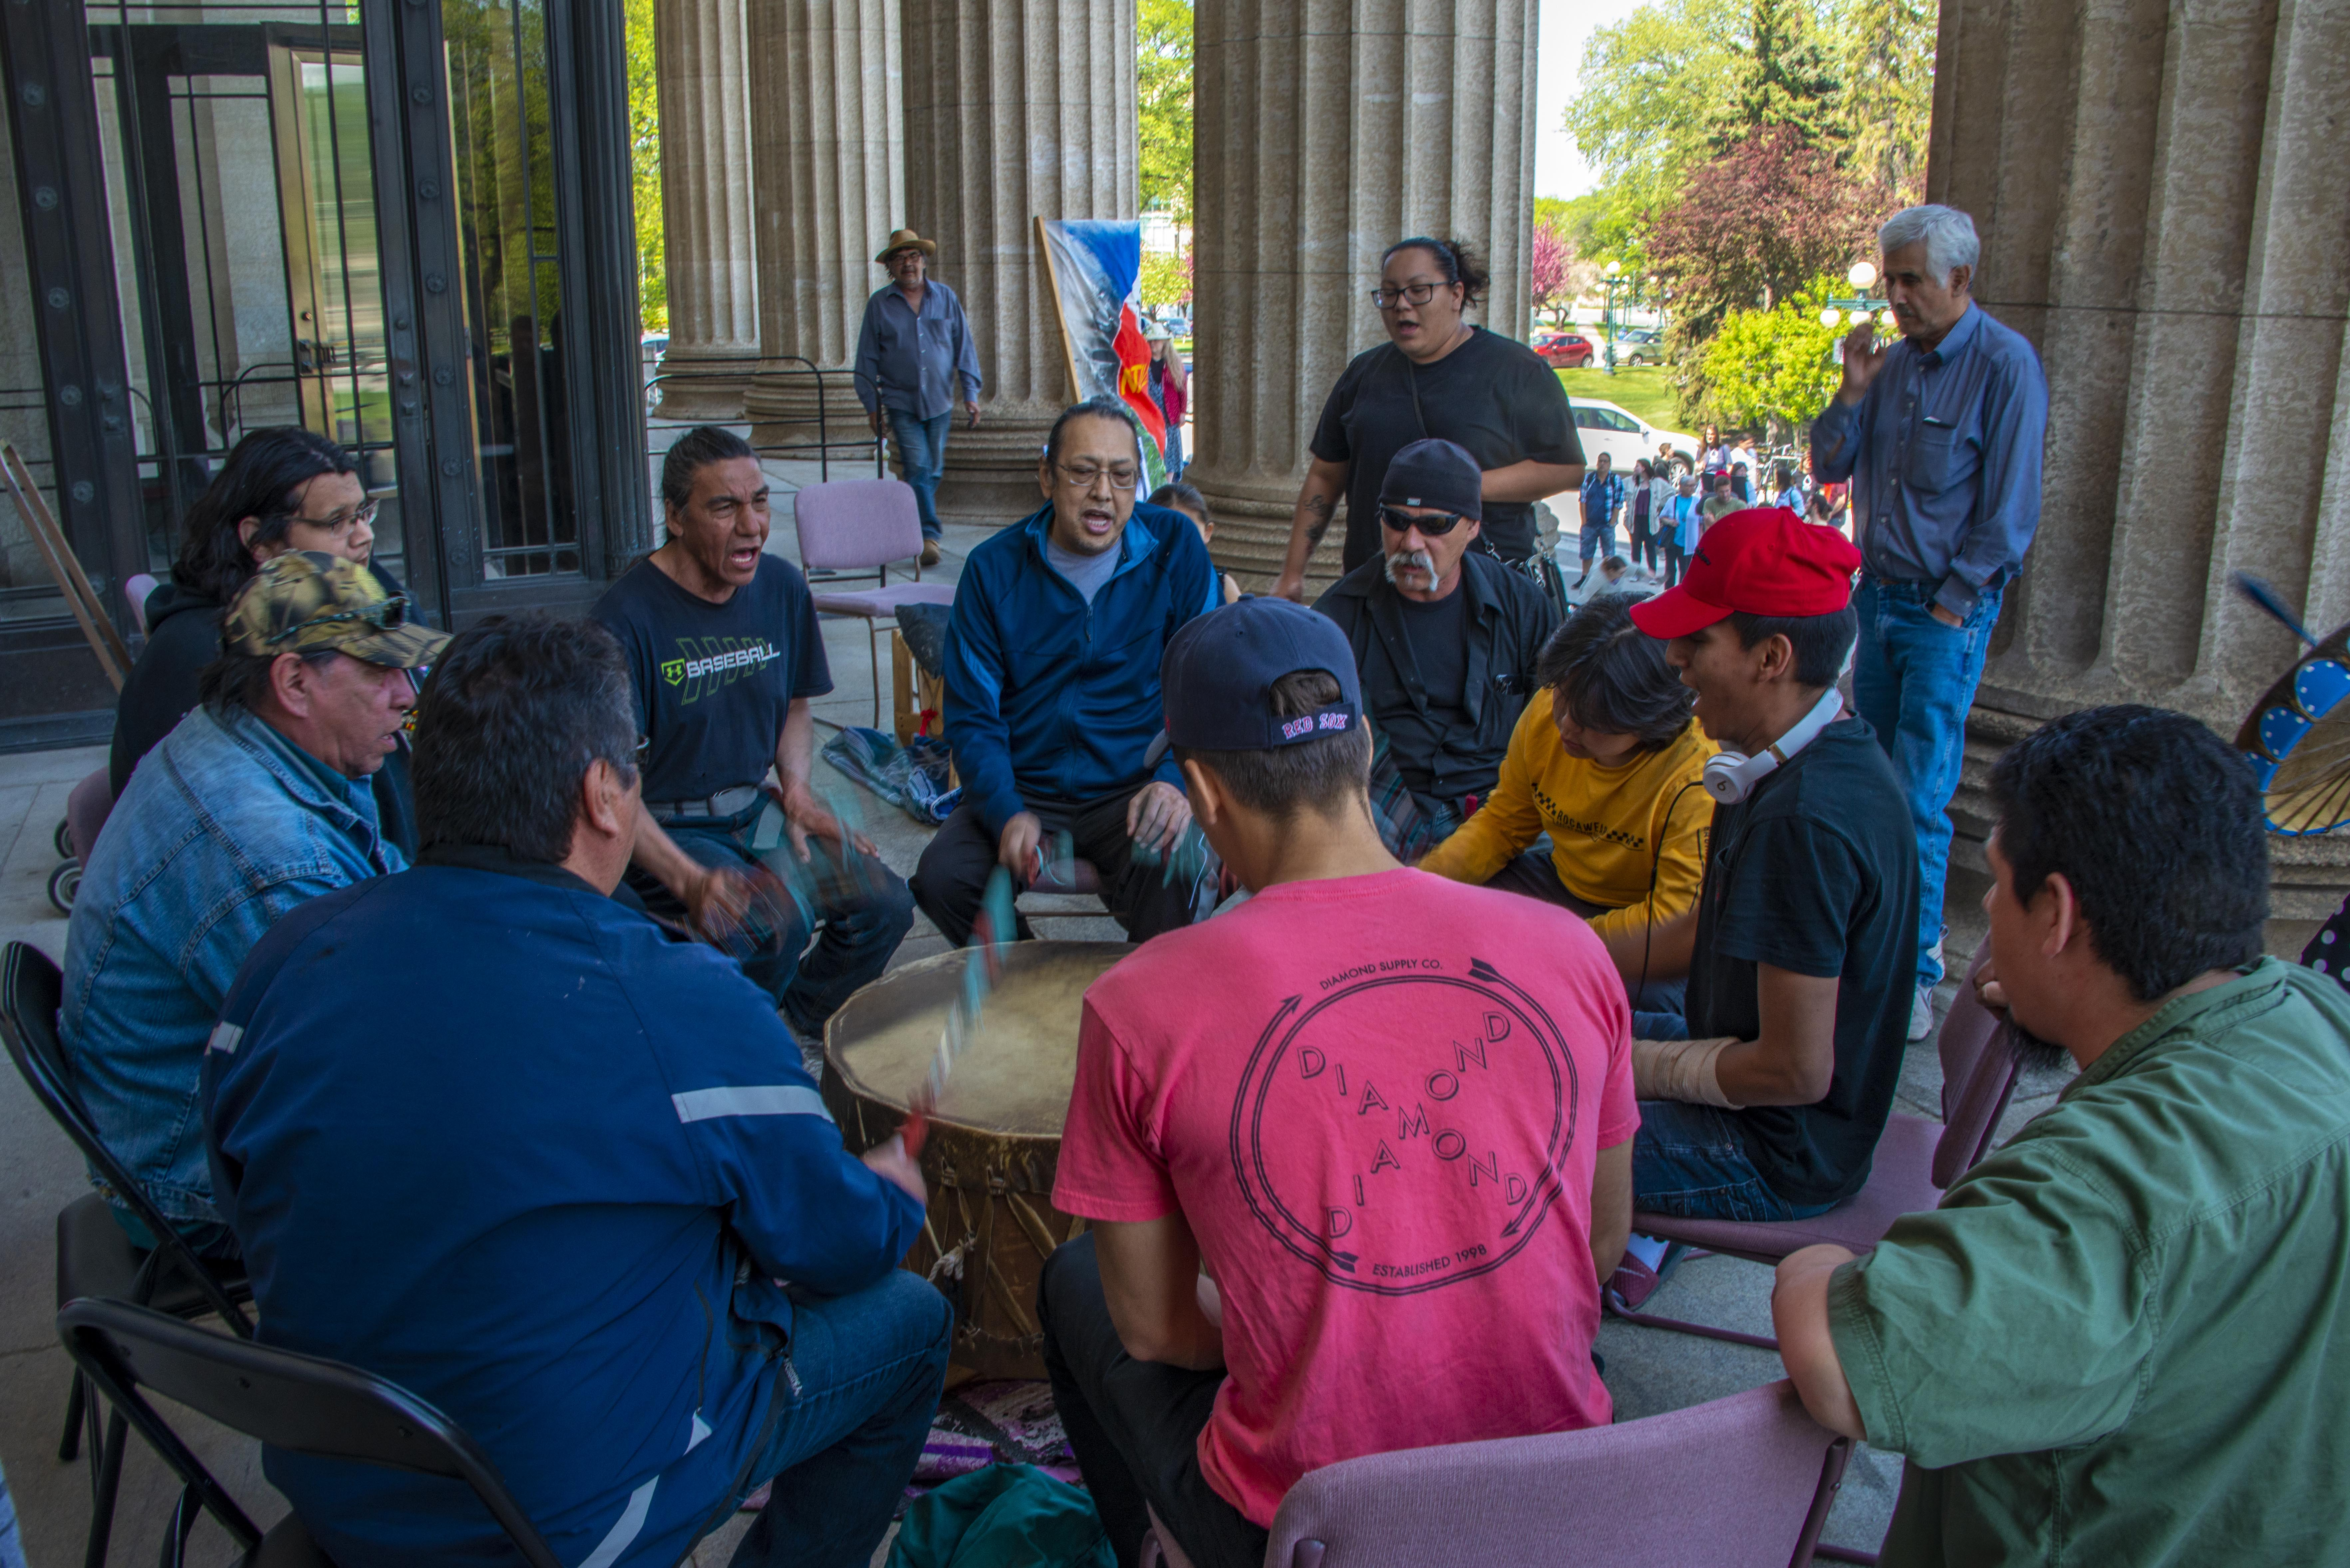 A drum group at the Manitoba Legislature protesting the the mine